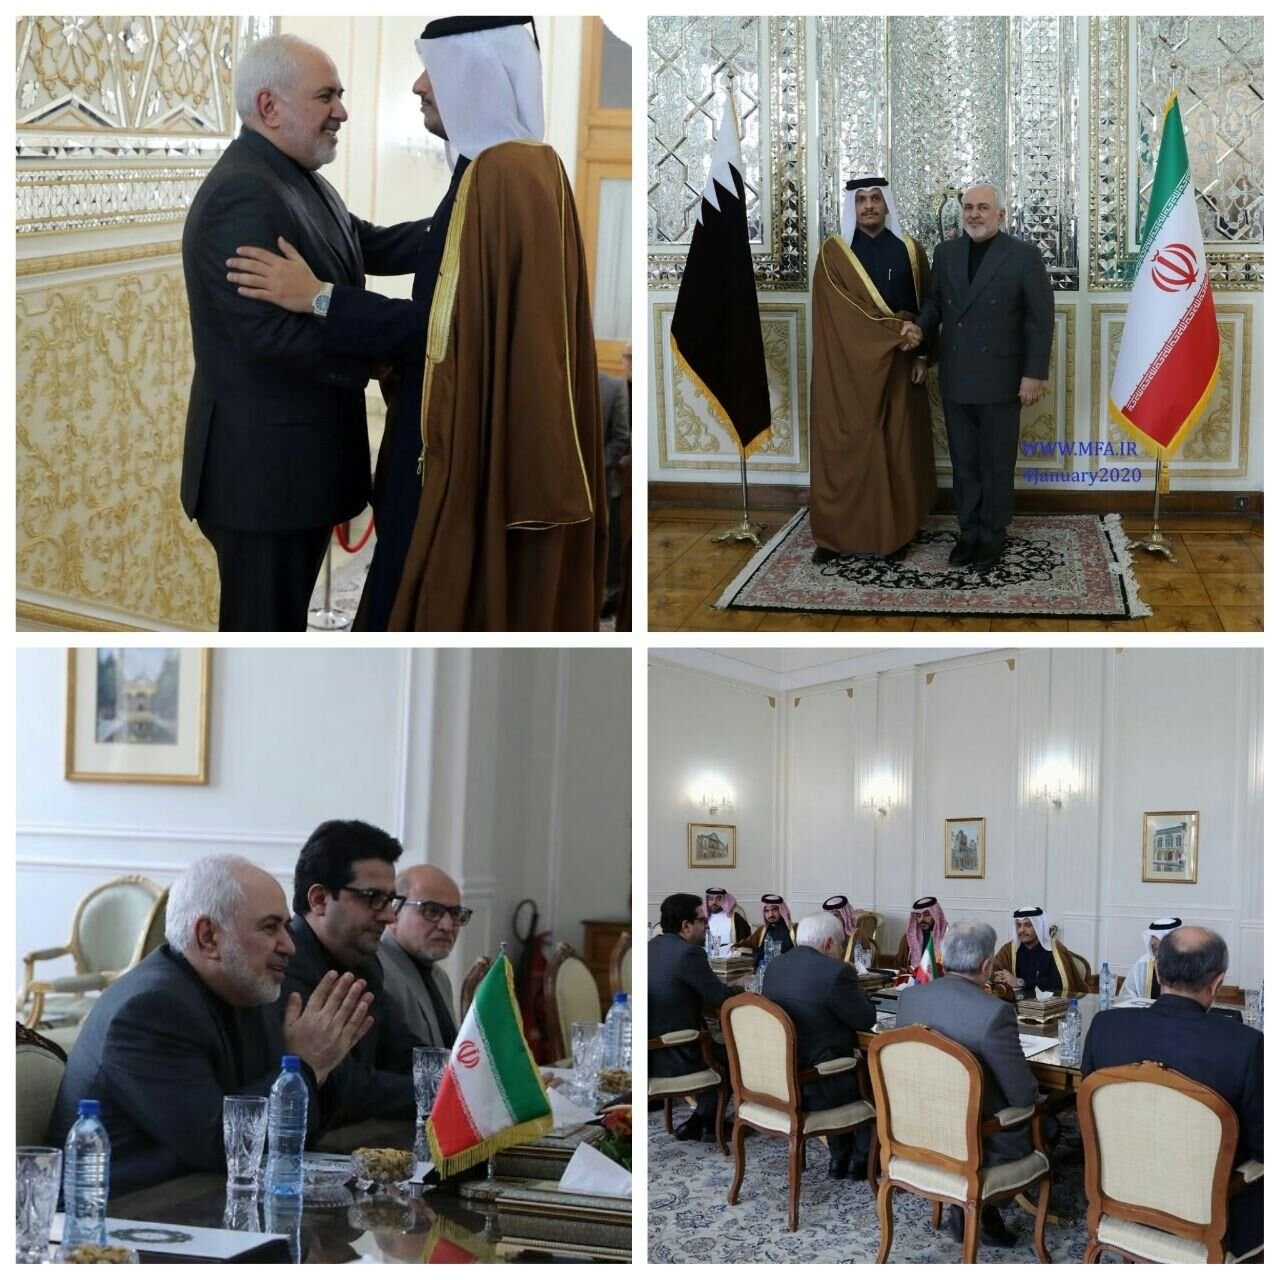 Photos released by Iran's state news agency IRNA show the meeting between Qatari and Iranian officials.